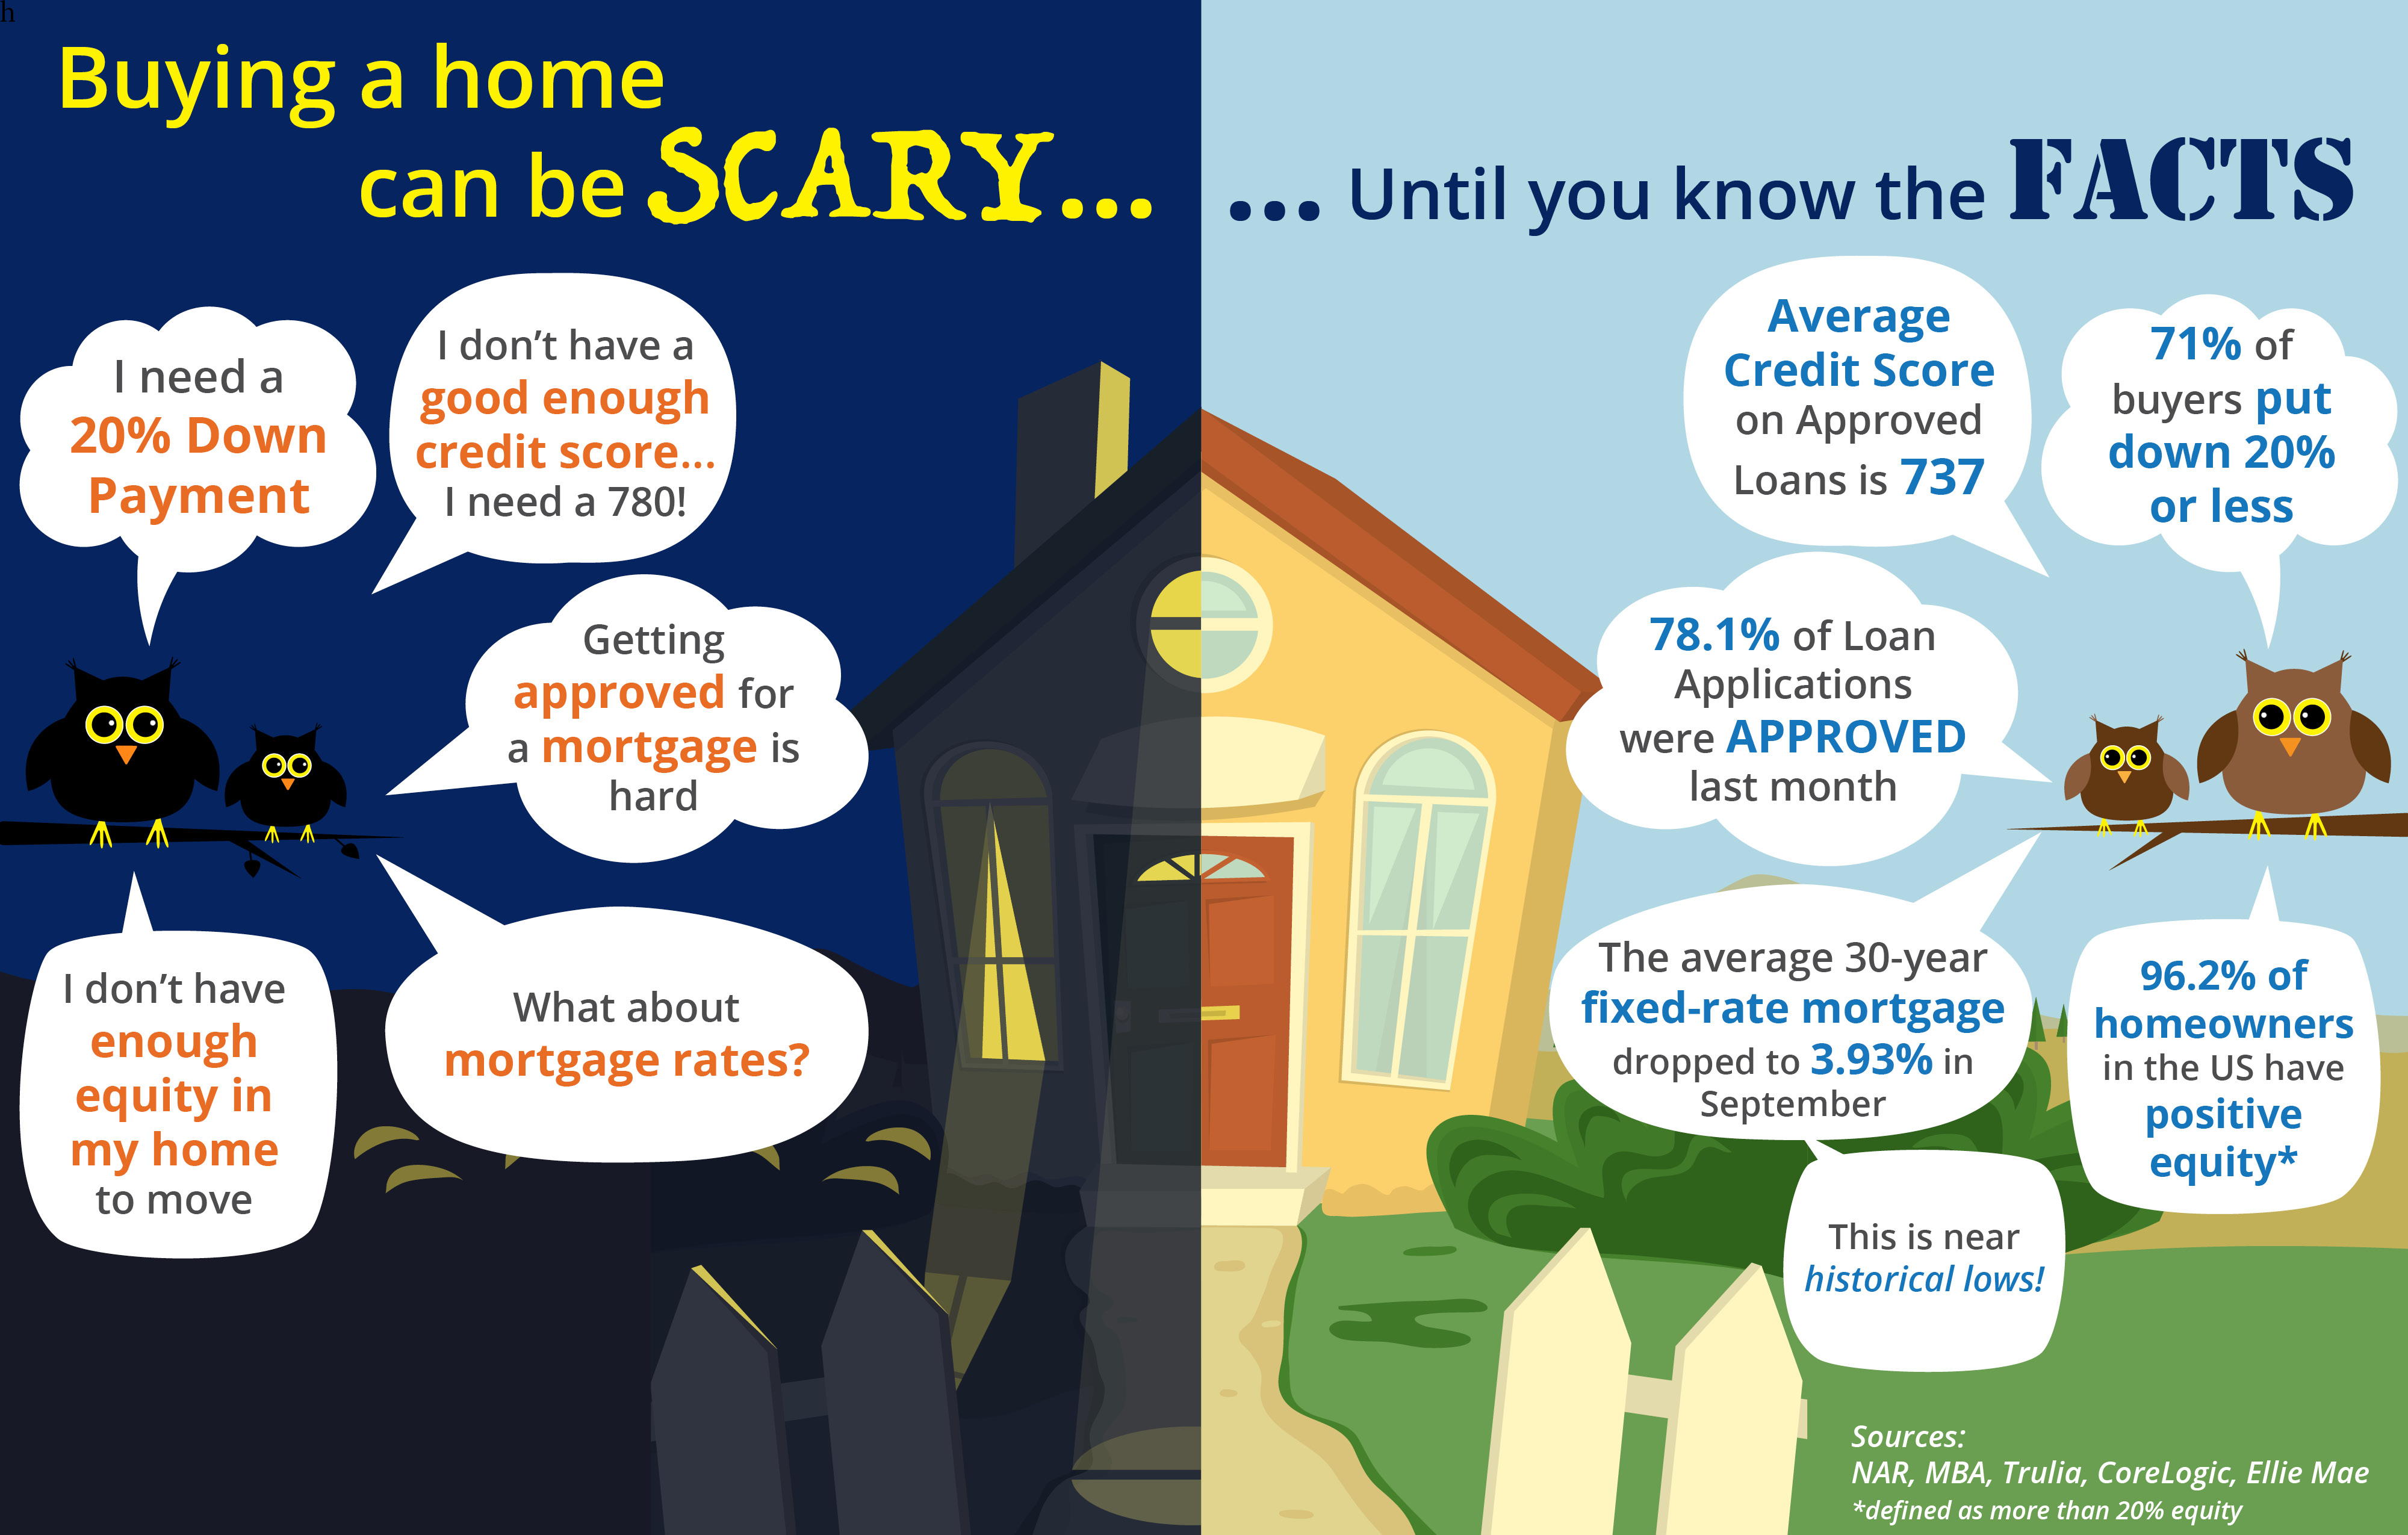 Buying a home can be SCARY…Until you know the FACTS [INFOGRAPHIC]   Simplifying The Market